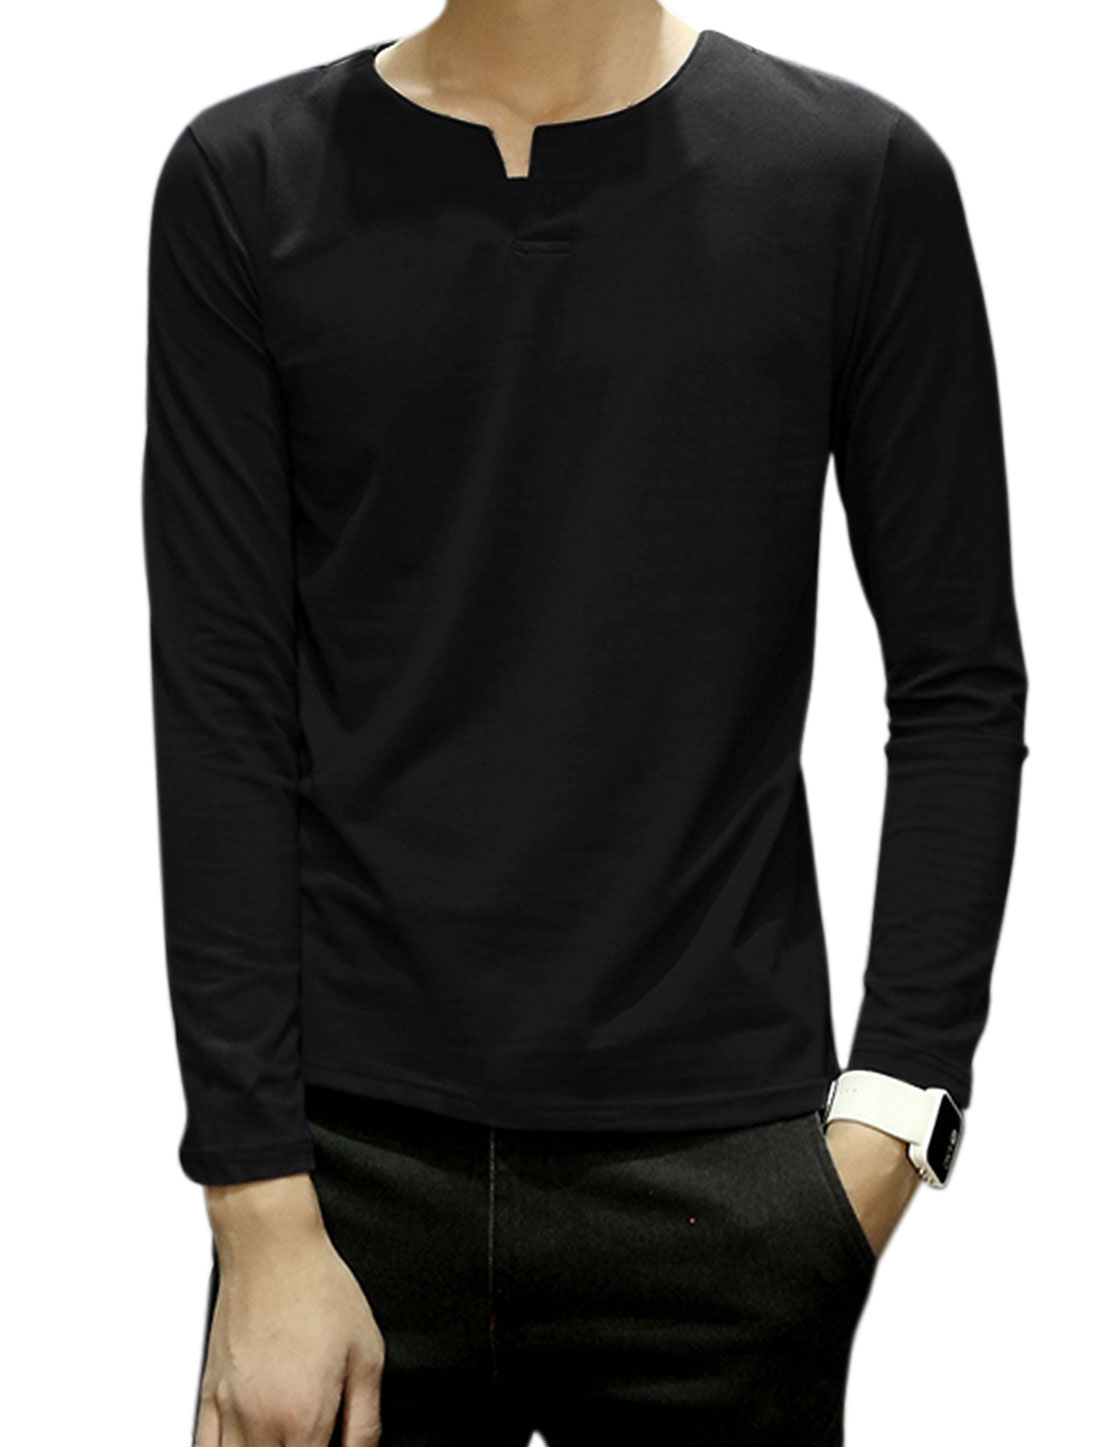 Men Split Neck Long Sleeves Button Upper Tee Shirt Black M